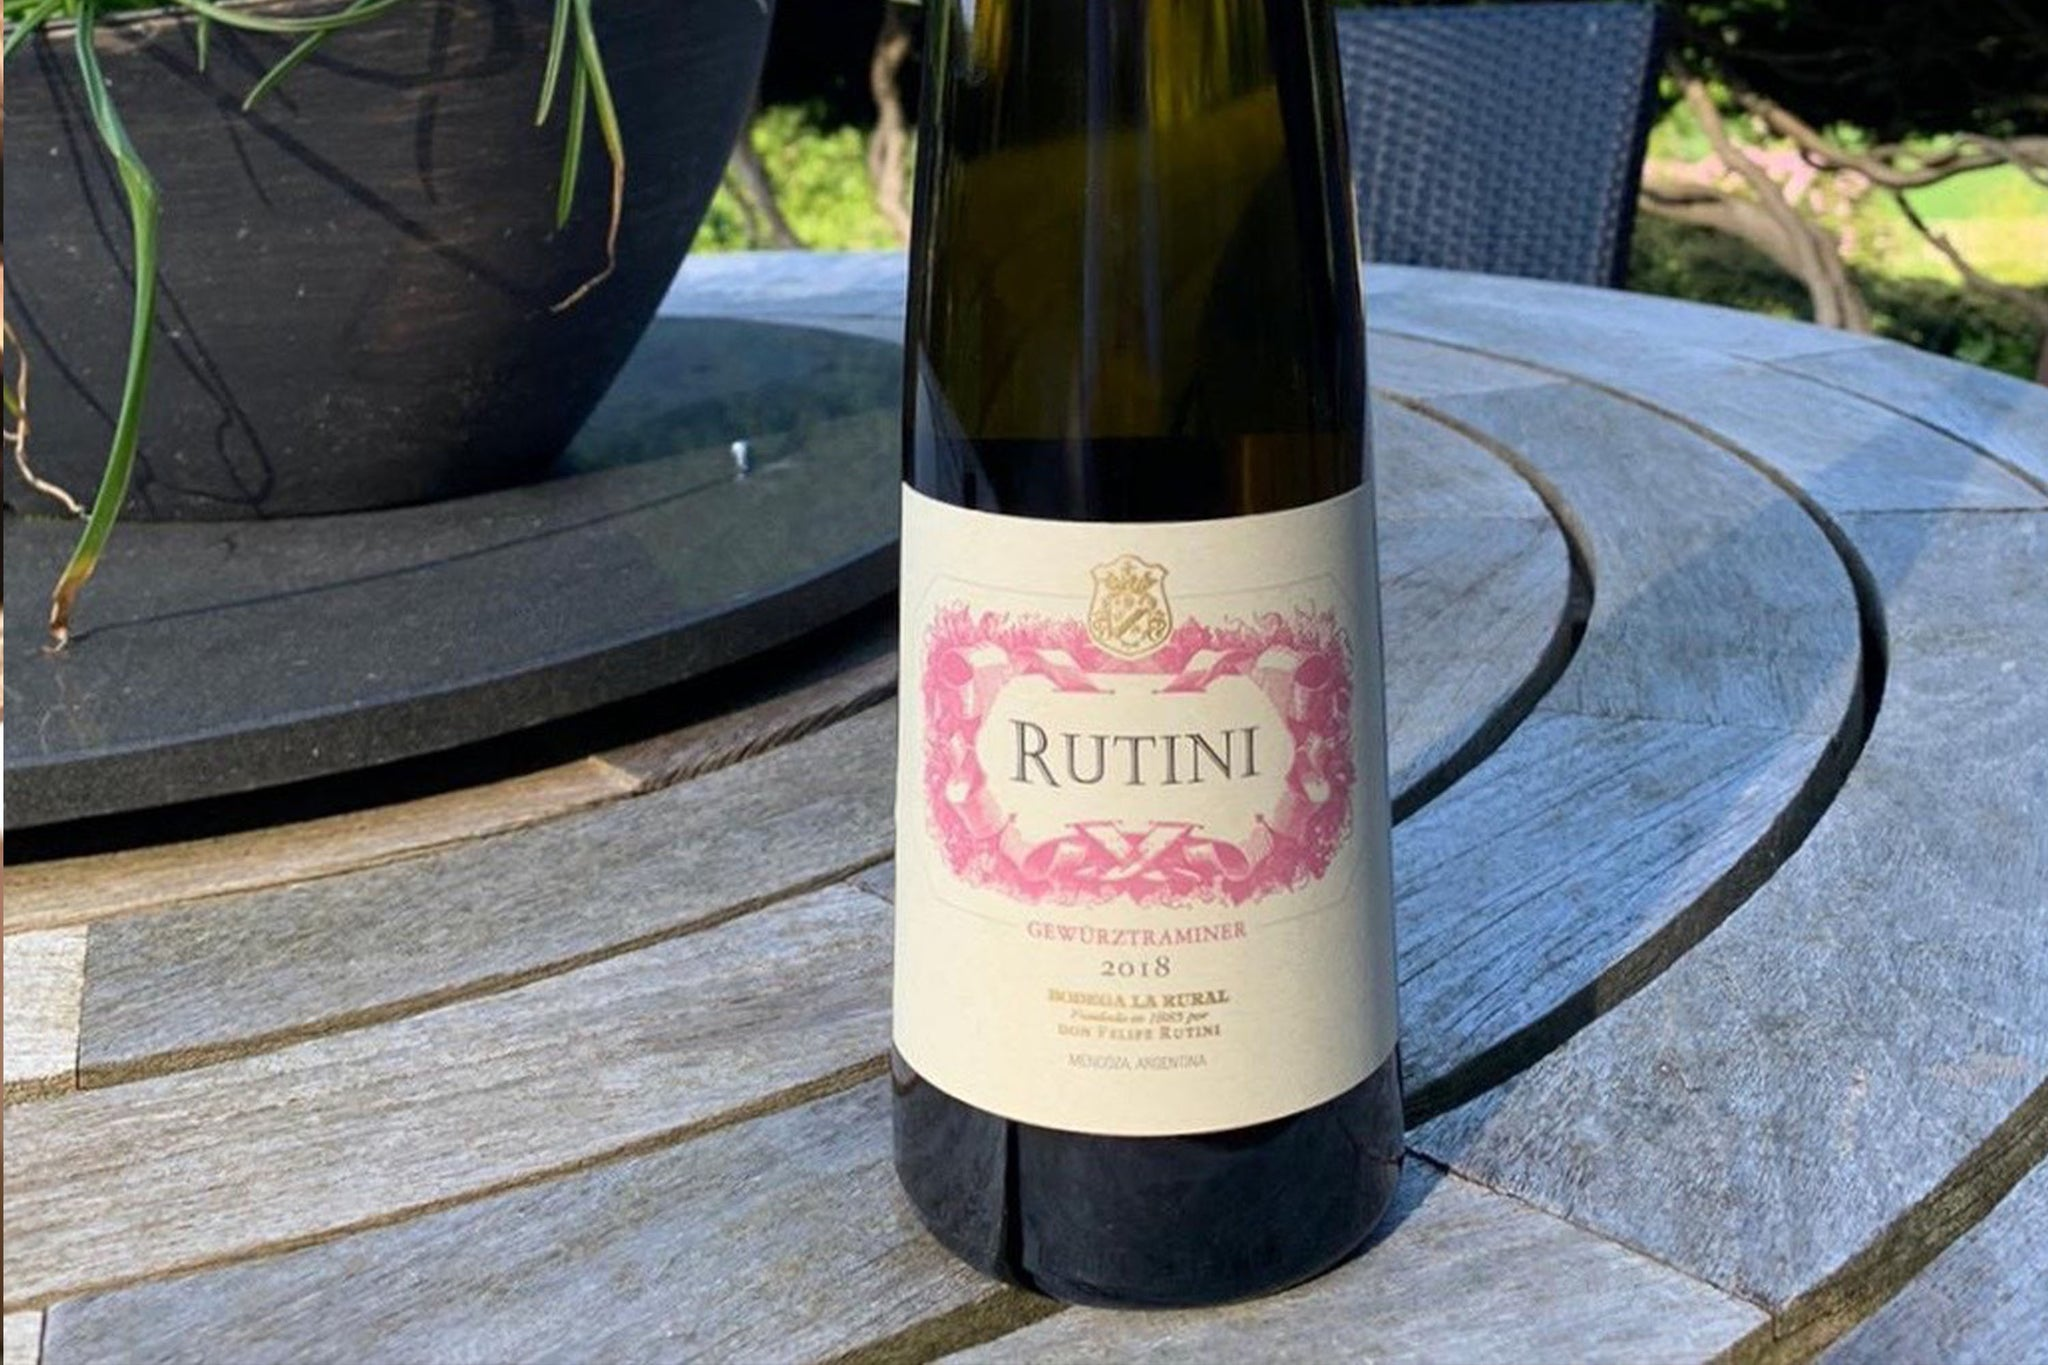 Rutini Gewürztraminer 2018 now in stock!